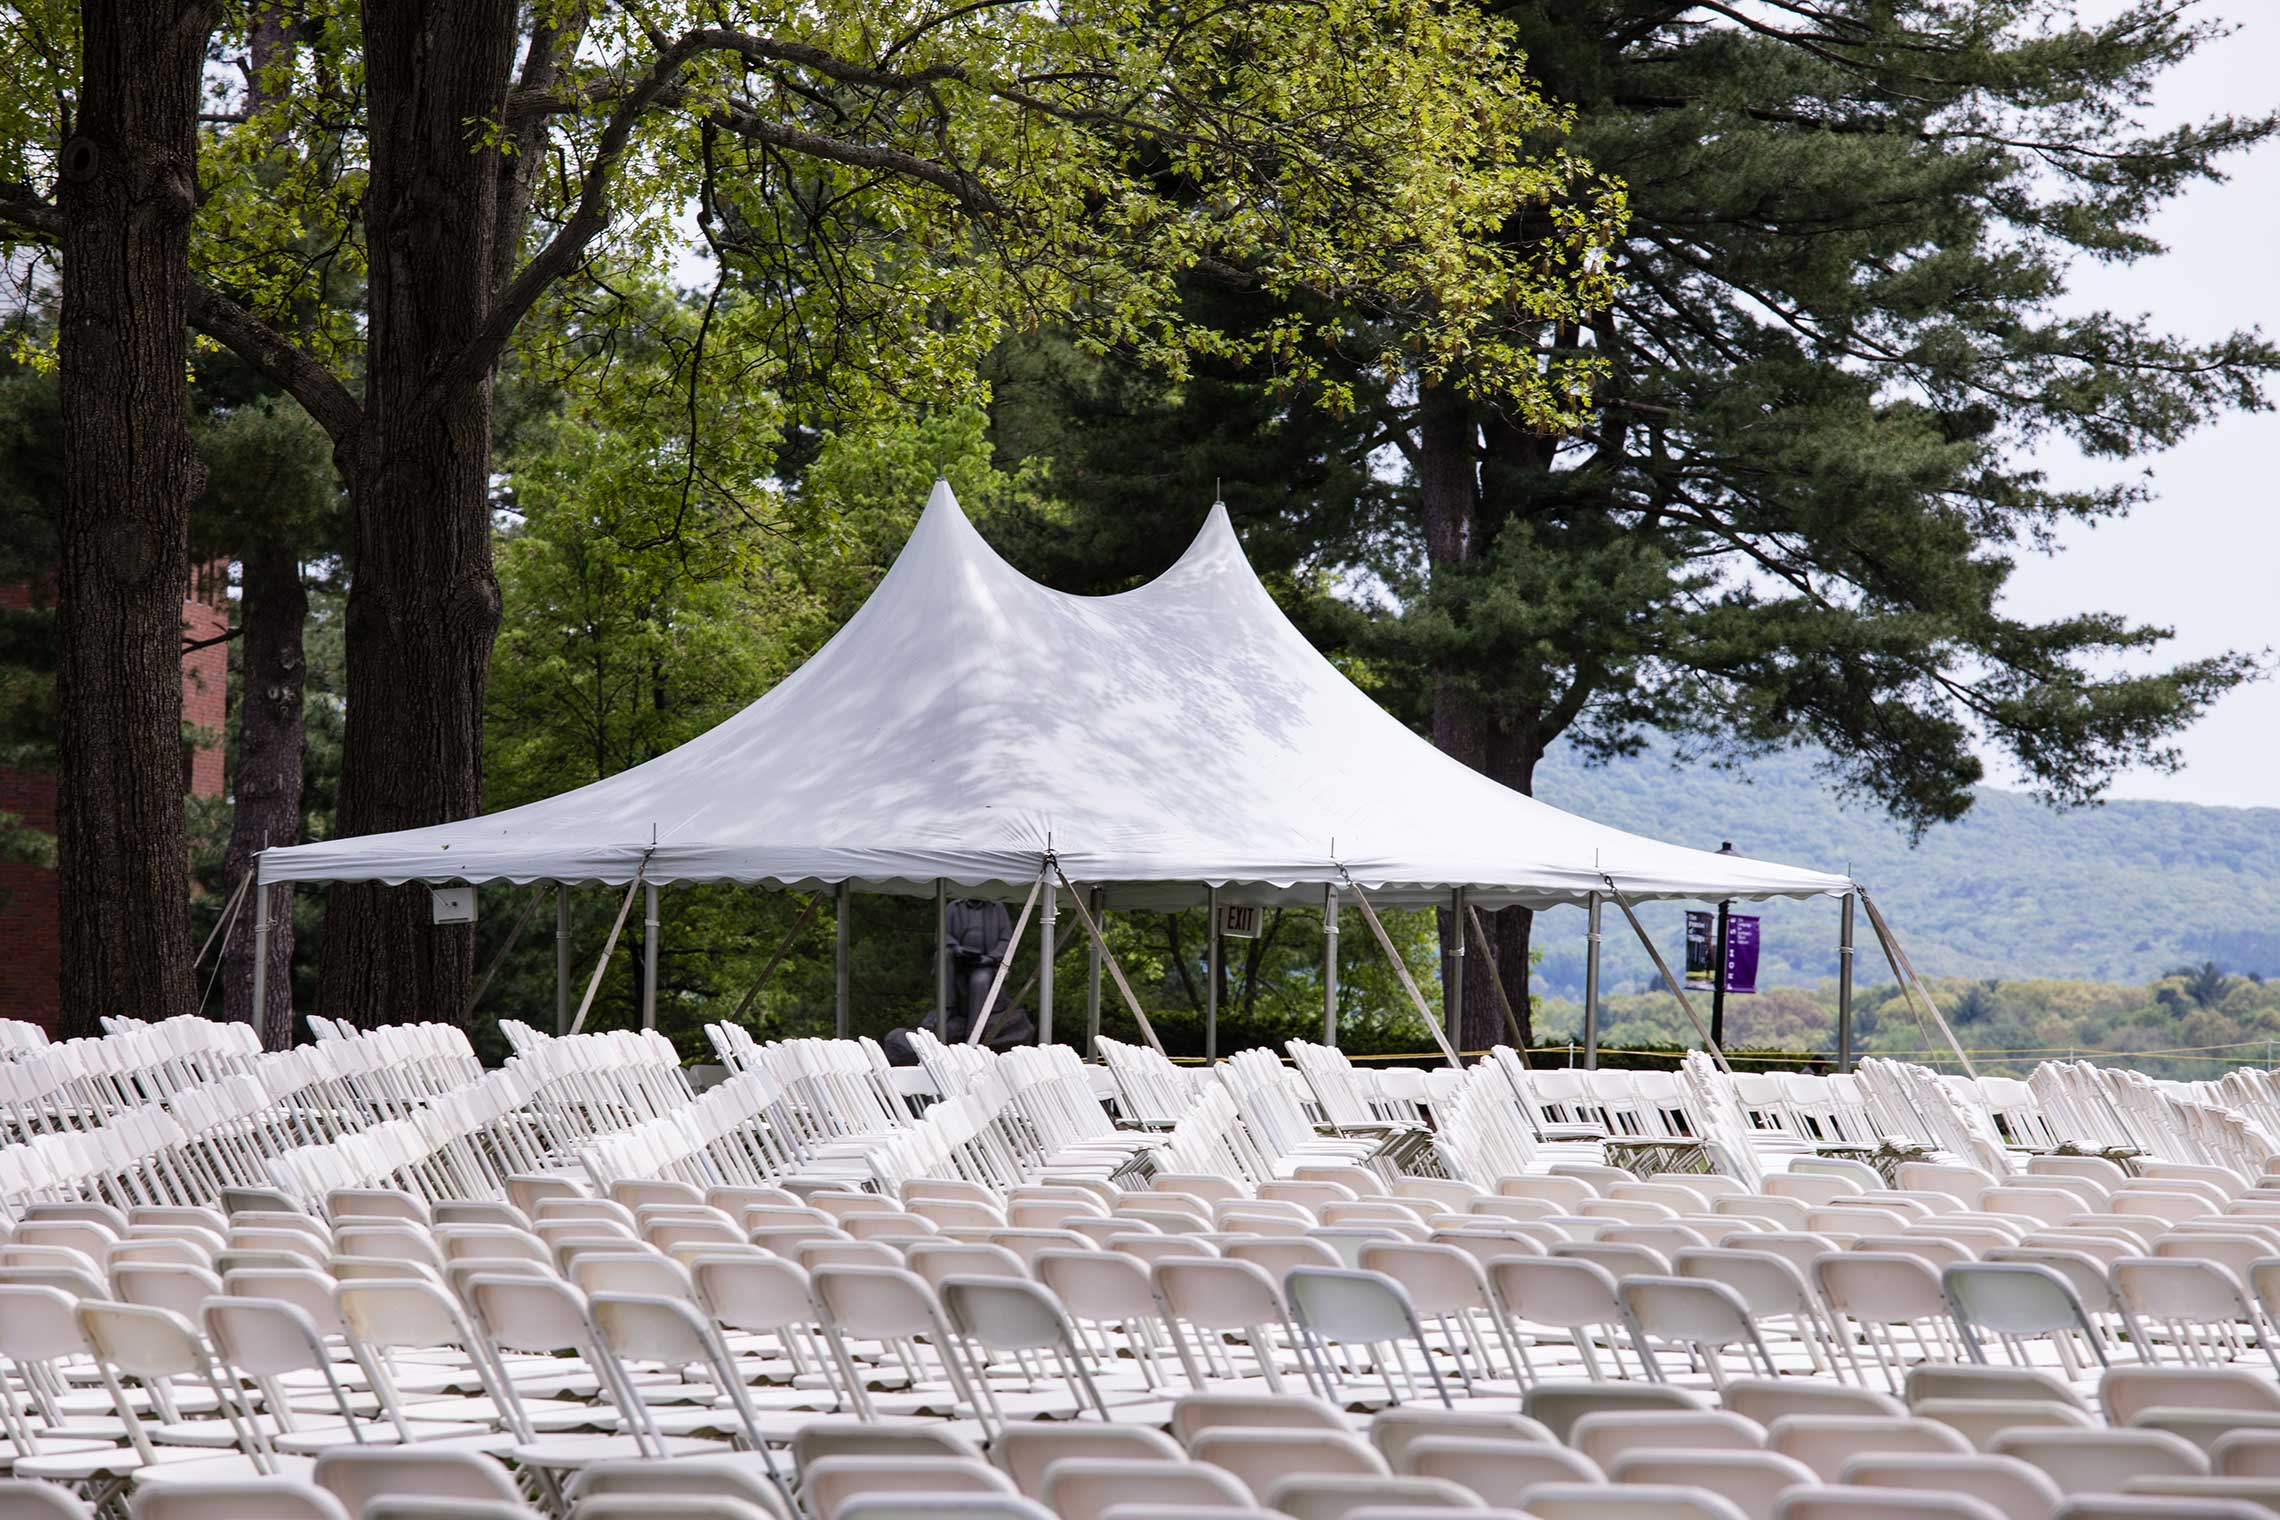 Commencement chairs